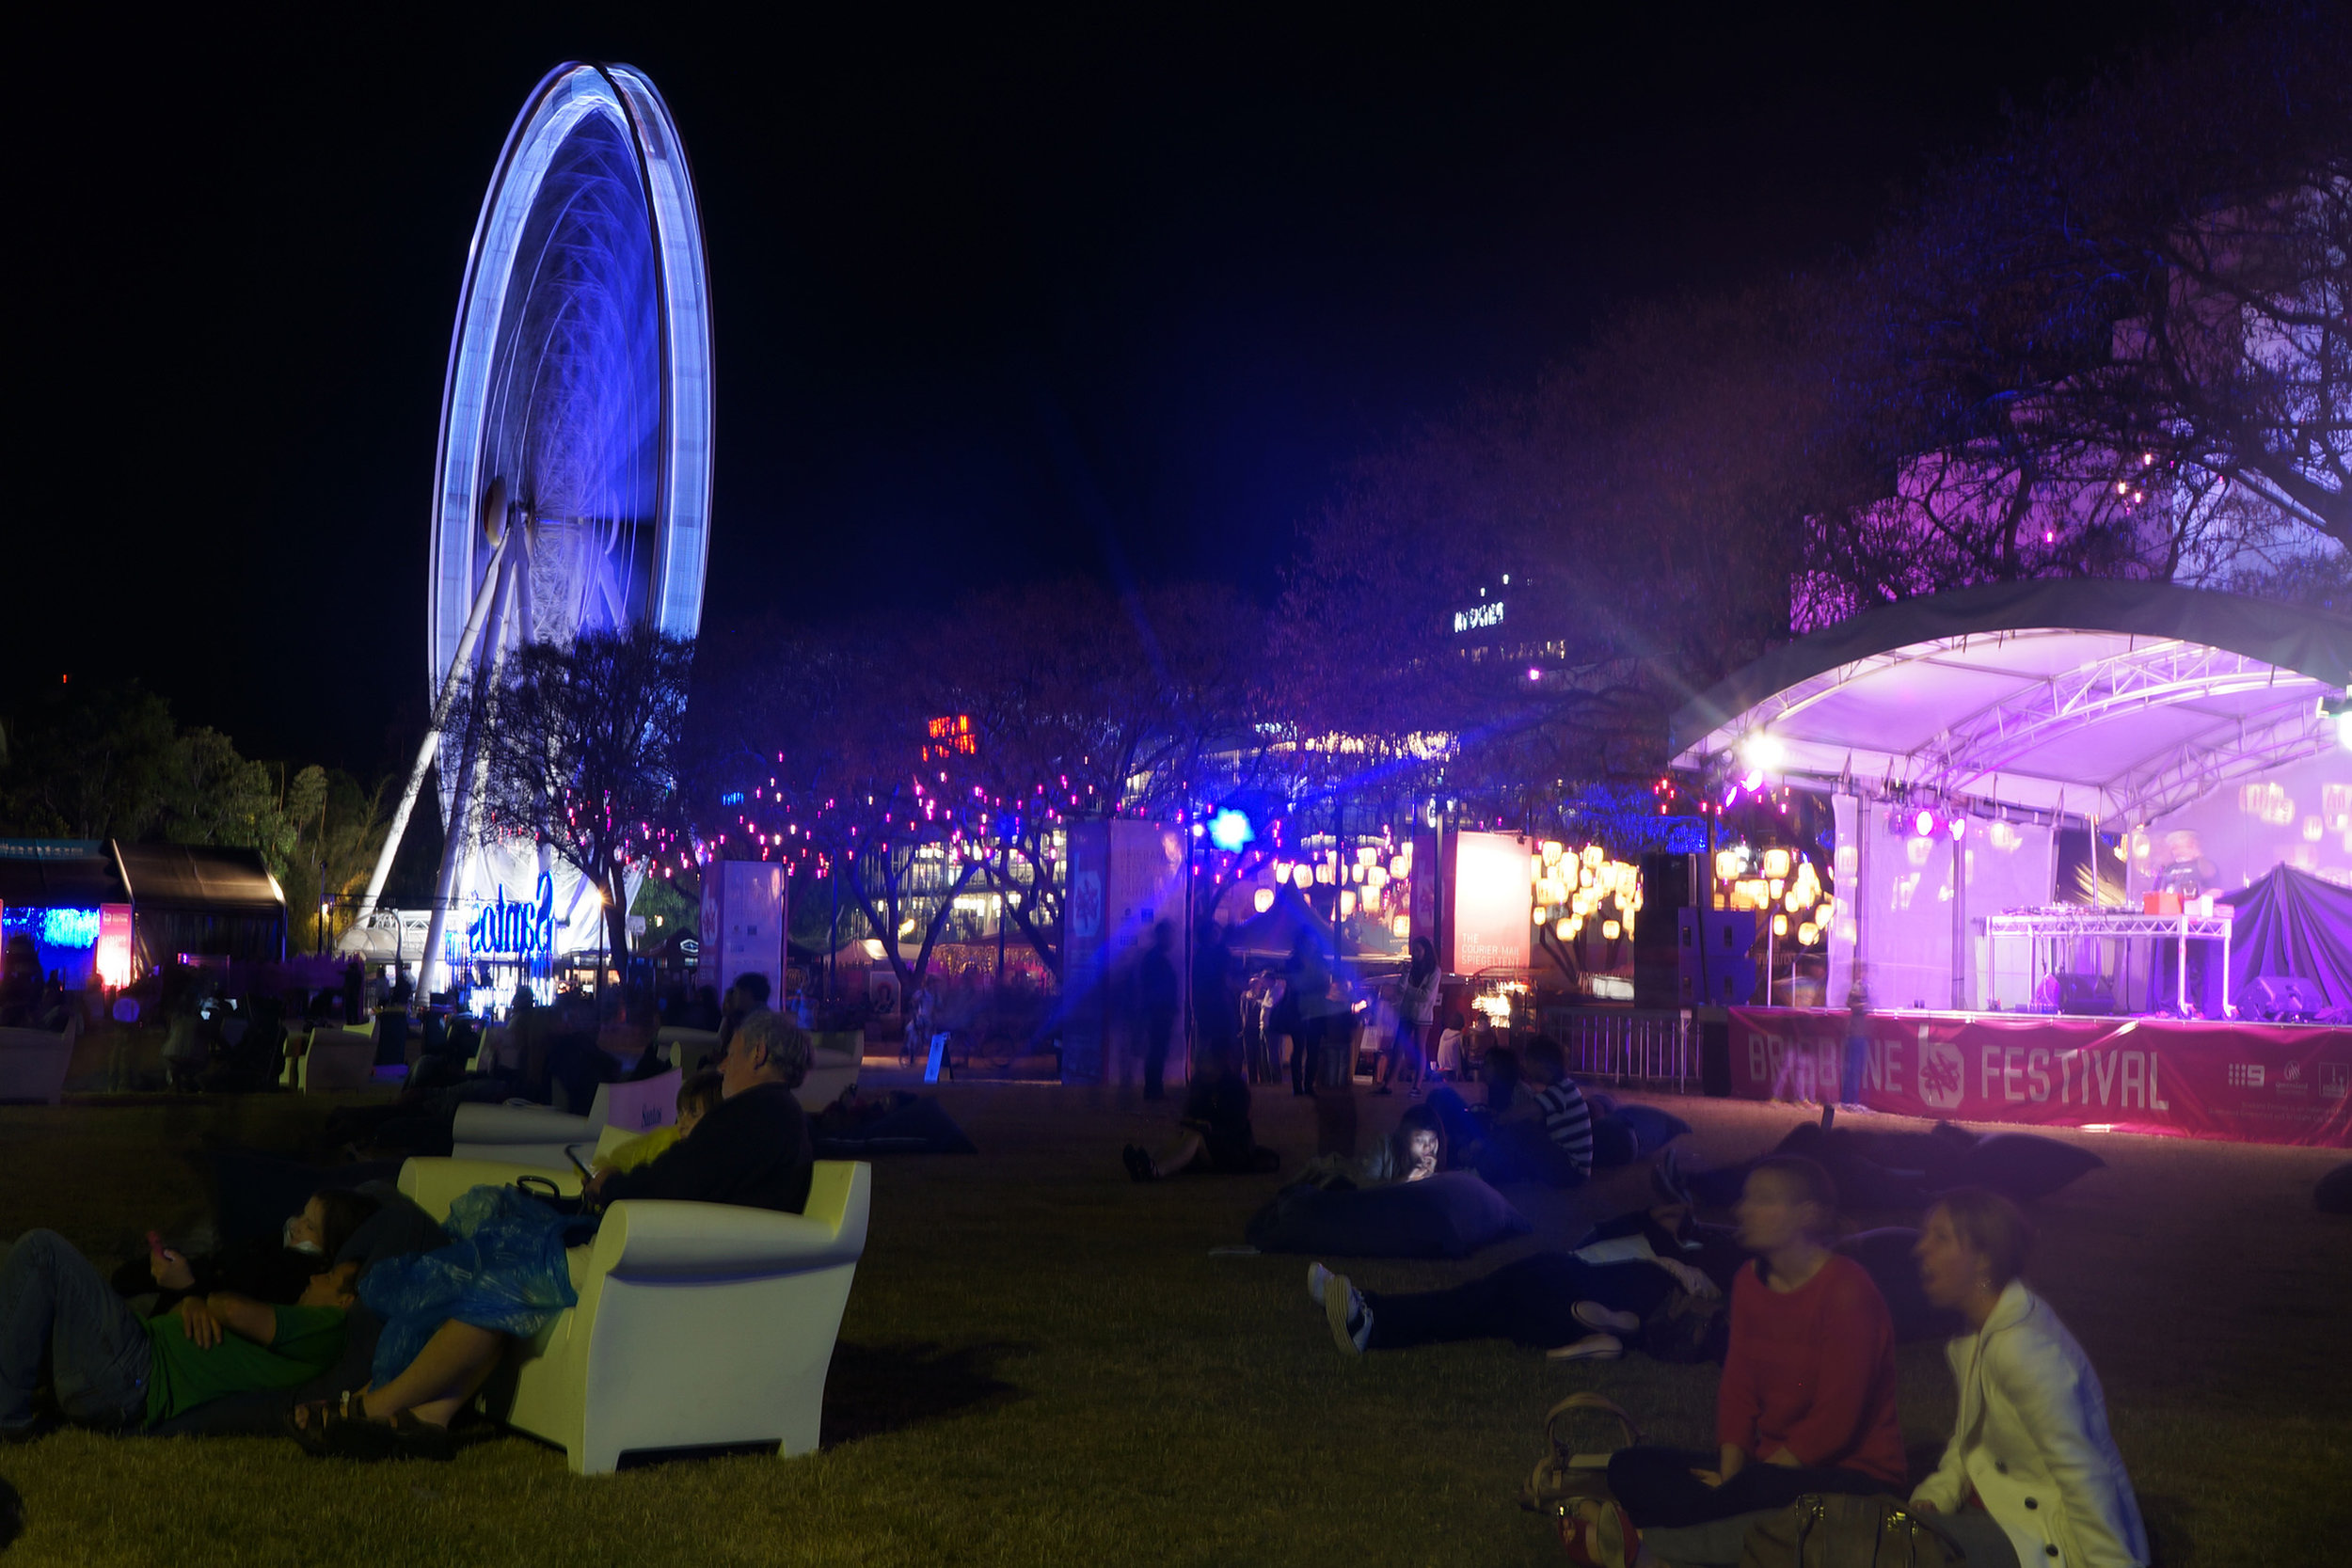 Fig 24: People watching a laser show on the Brisbane River foreshore – a special event